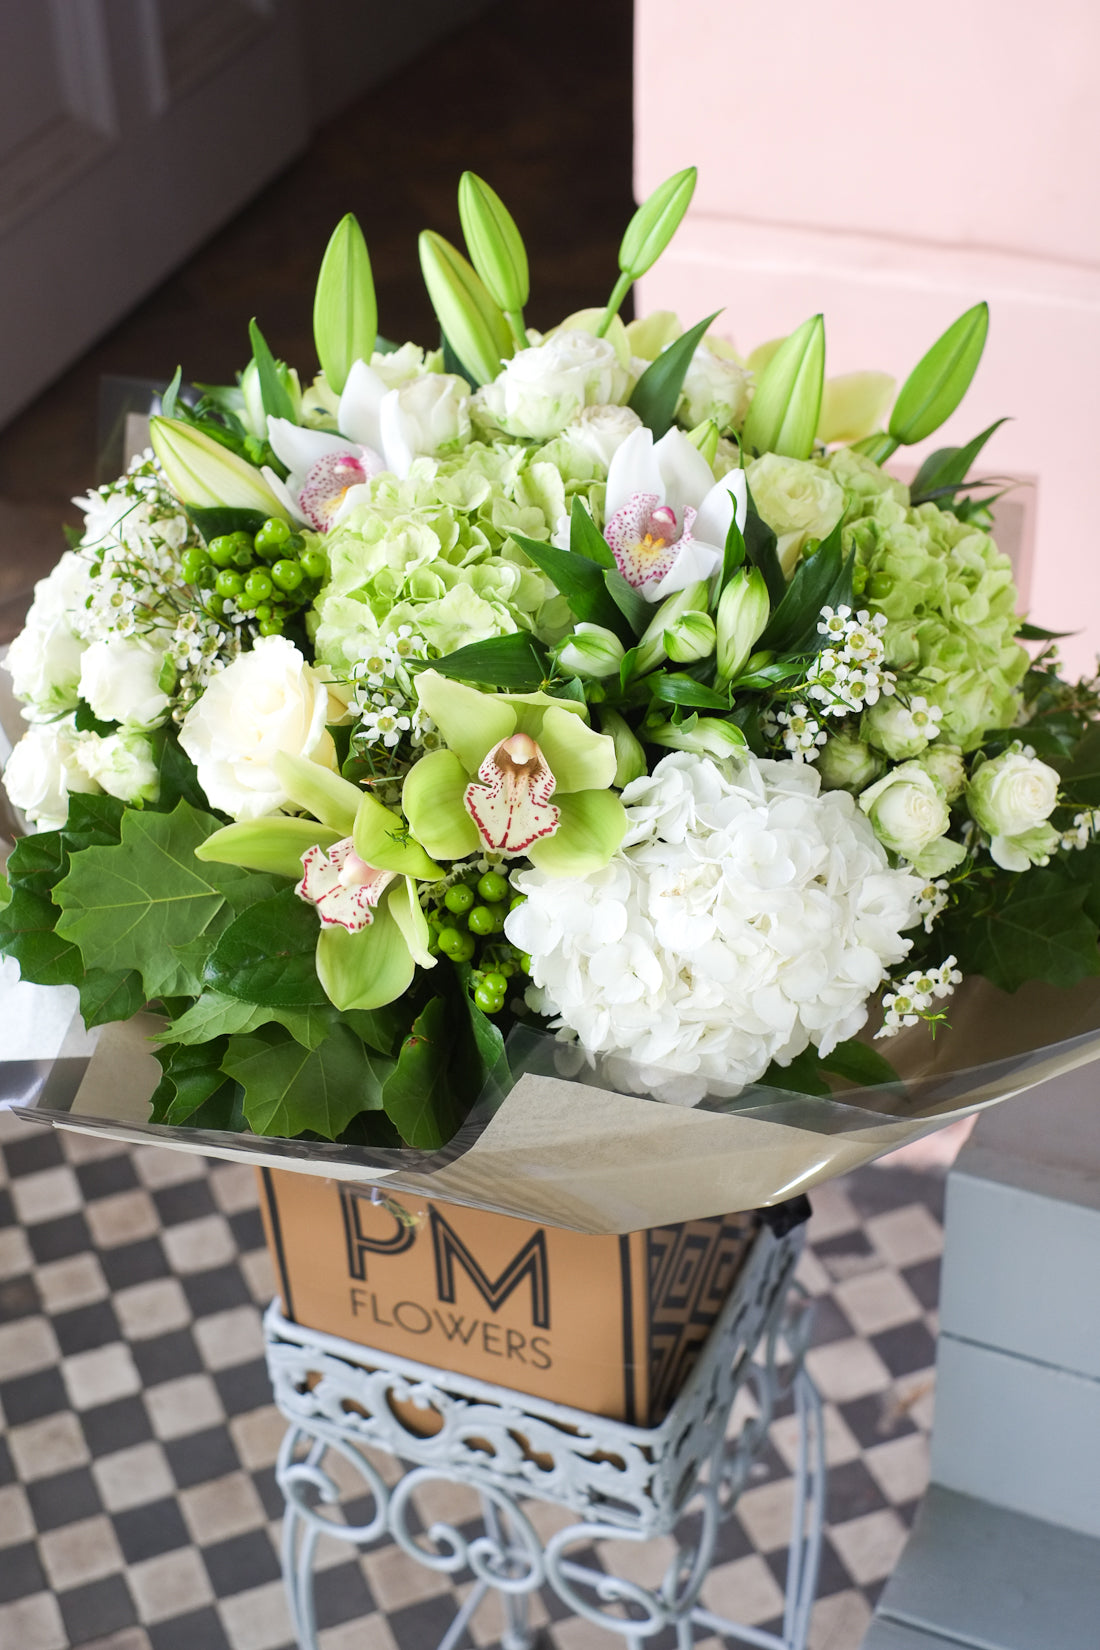 An enchanting flower bouquet featuring spray and large headed white roses, white and green hydrangeas, cymbidium, white lilies, waxflower and foliage.